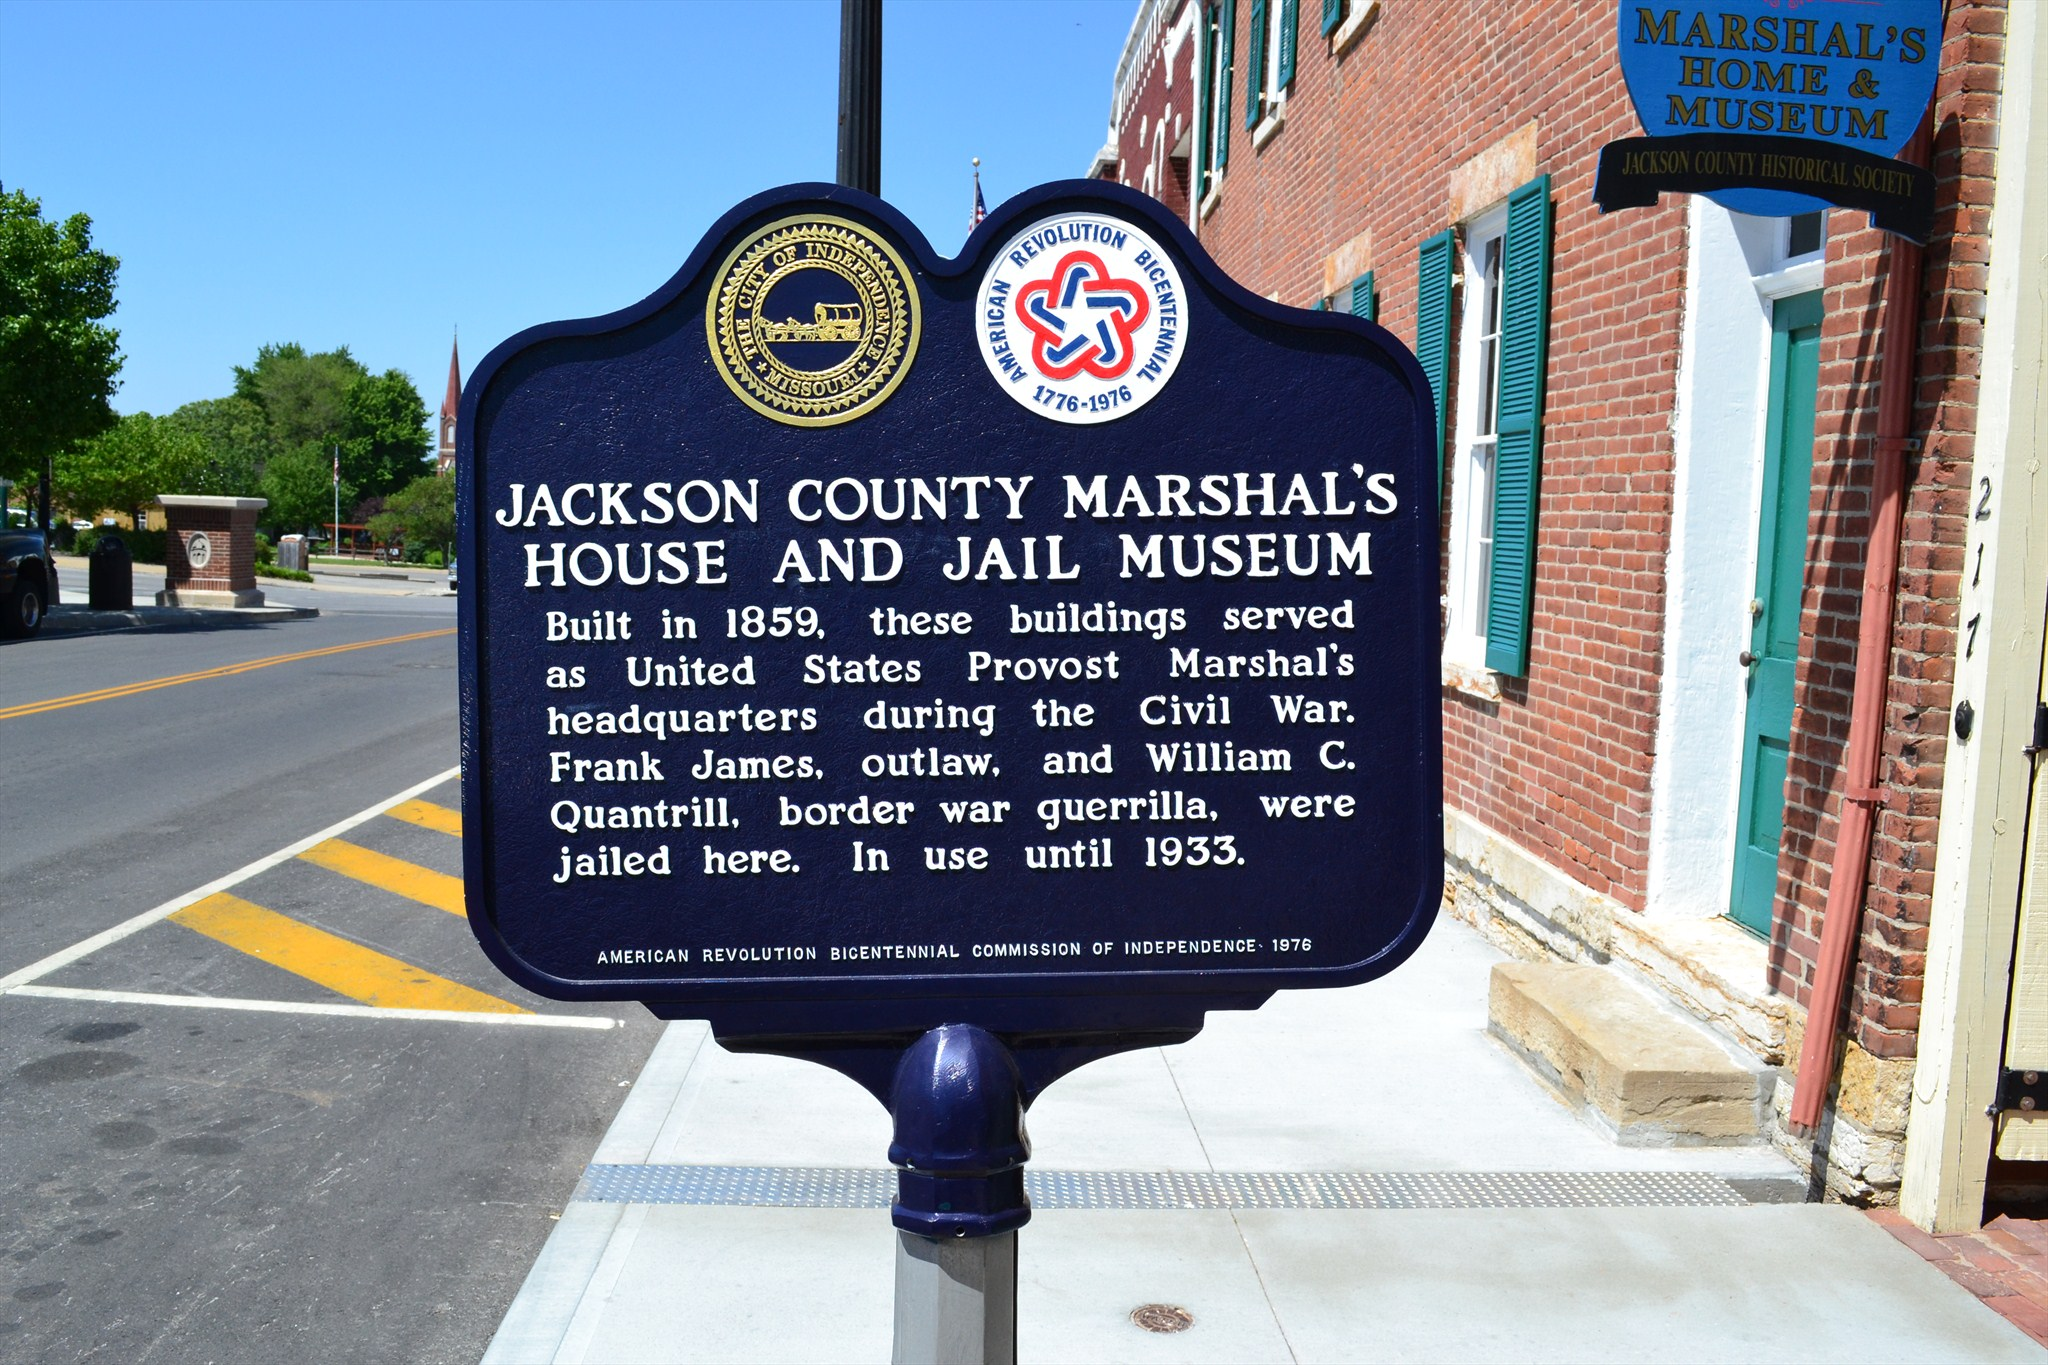 Closeup of the historical marker in front of the building.